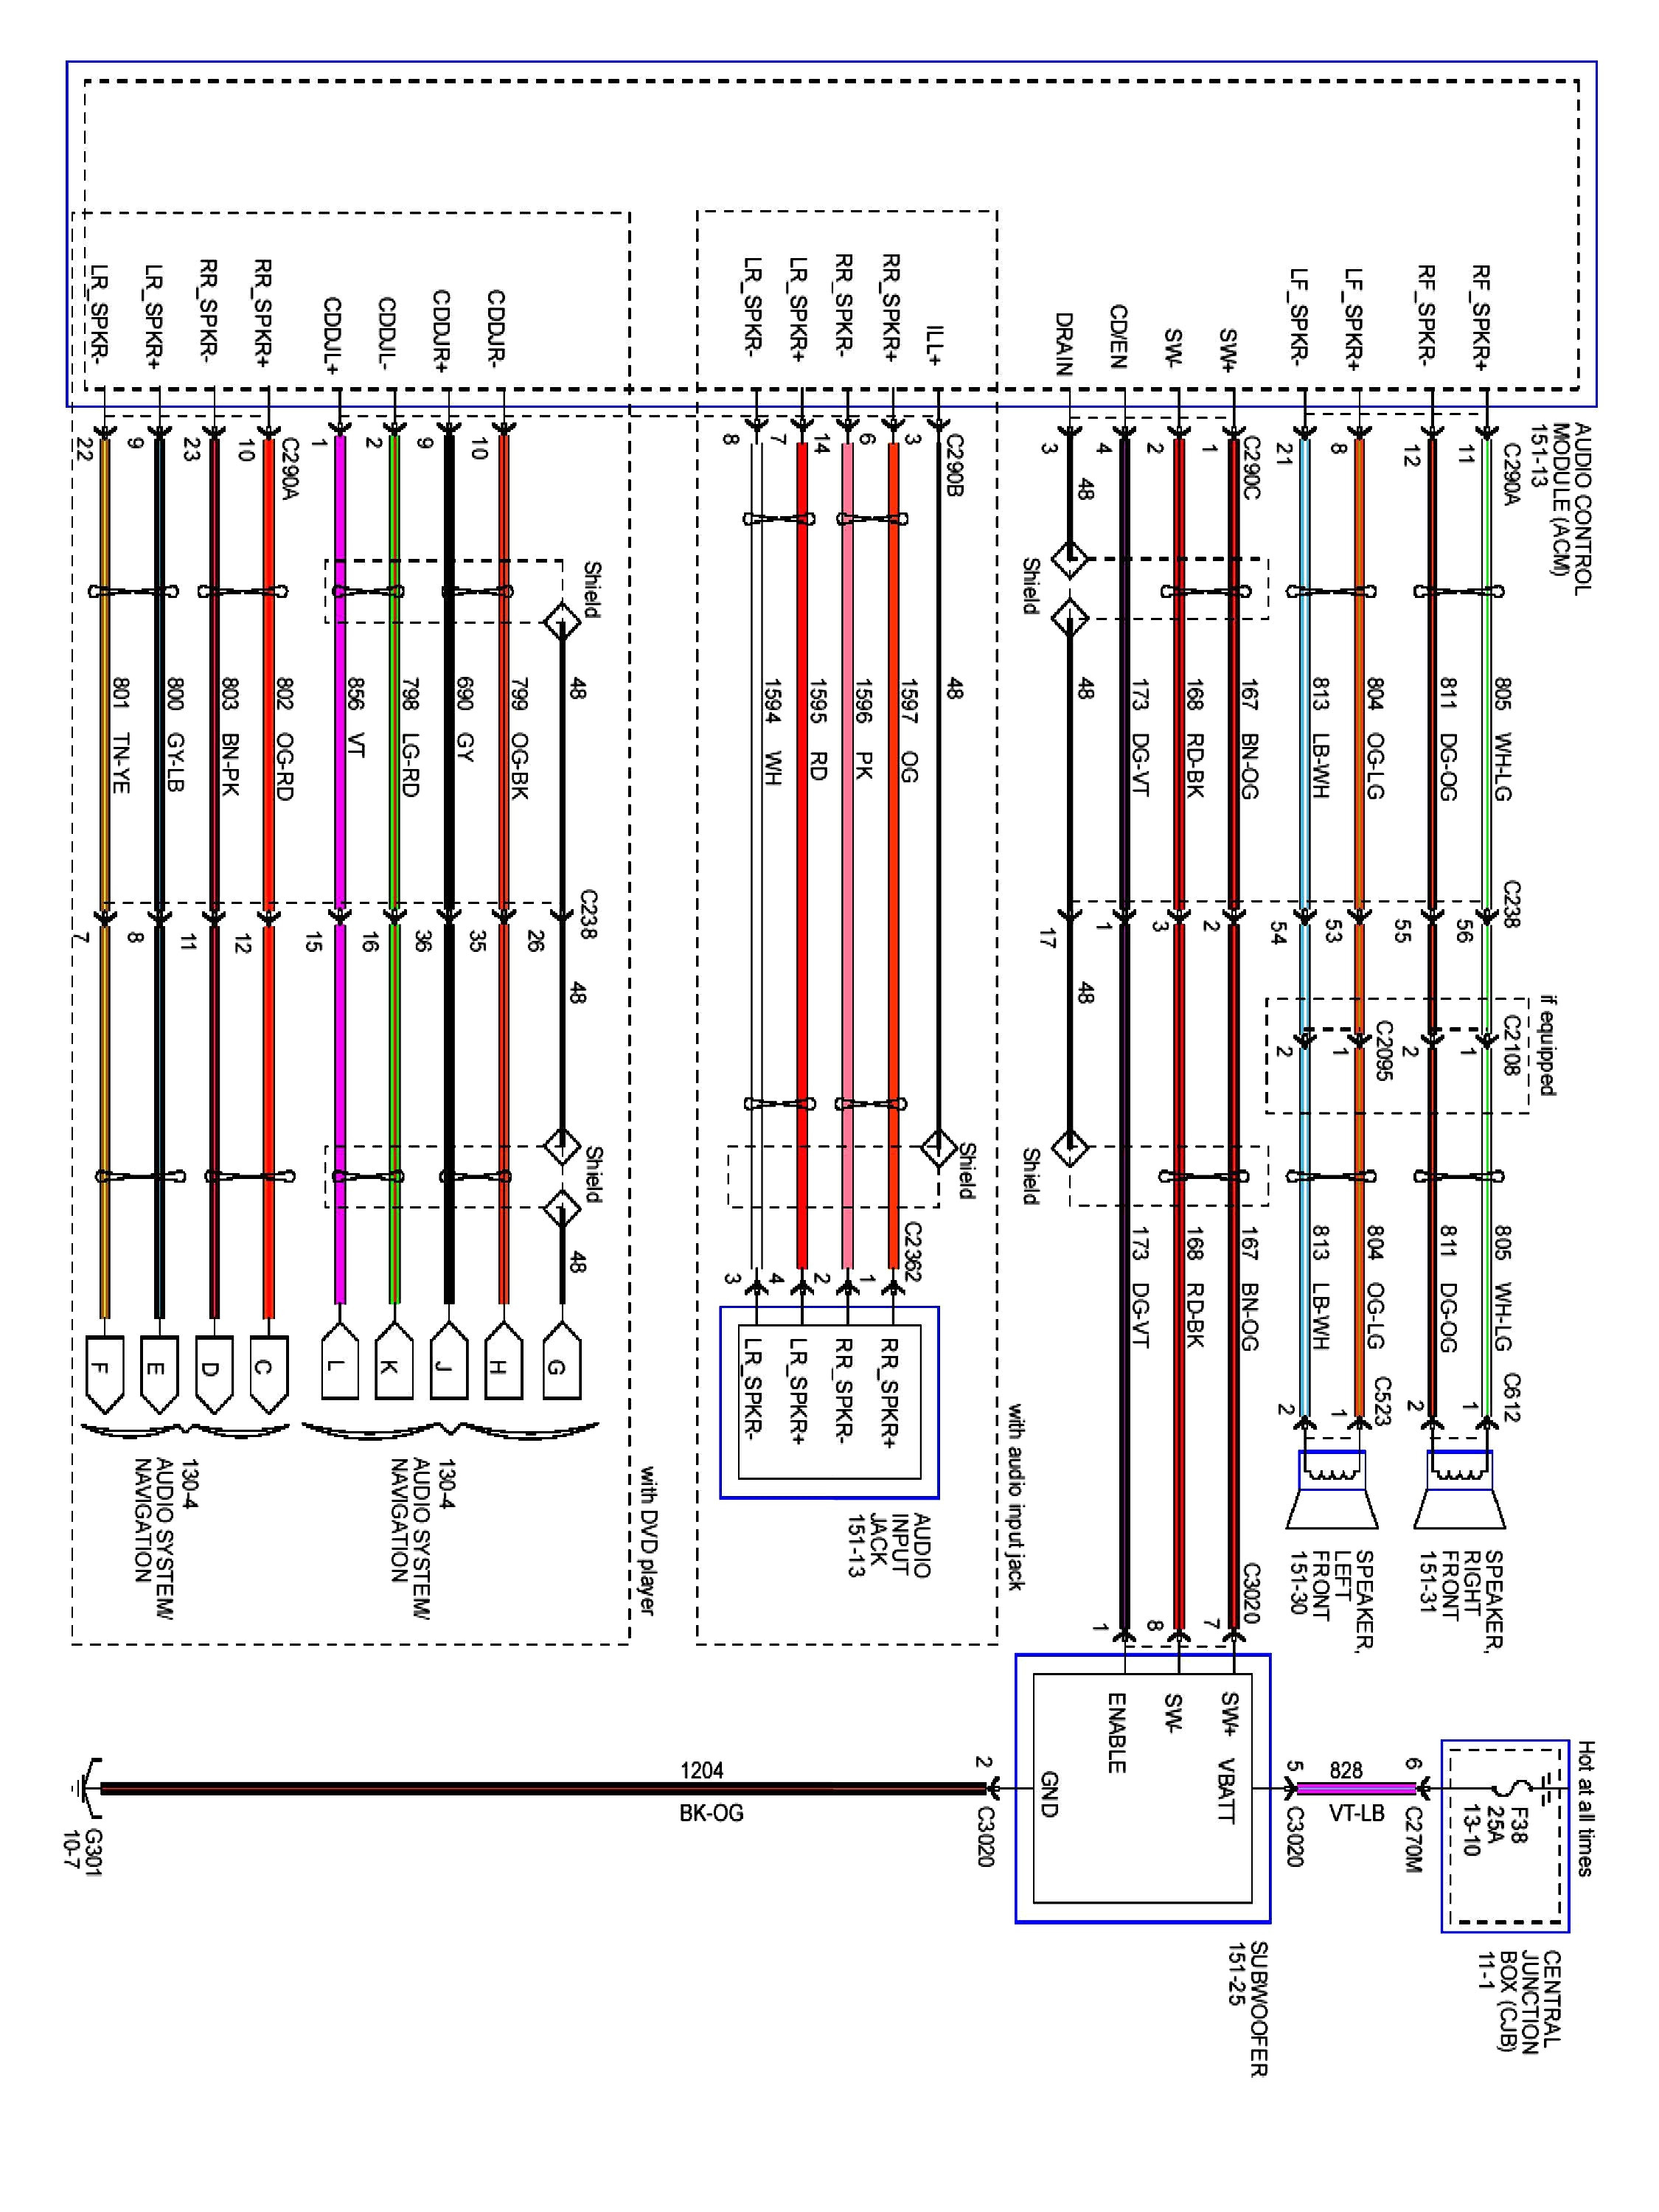 Ford F Wiring Diagrams on ford 250 wiring diagram, ford bronco wiring diagram, ford truck wiring diagrams, ford f500 wiring diagram, ford explorer wiring diagram, ford mustang wiring diagram, dodge dakota wiring diagram, dodge ram wiring diagram, ford super duty wiring diagram, ford fairlane wiring diagram, ford v10 wiring diagram, 1989 ford wiring diagram, 86 ford wiring diagram, ford f100 wiring diagram, ford econoline van wiring diagram, ford power window switch wiring diagram, mercury milan wiring diagram, ford aerostar wiring diagram, yamaha f250 wiring diagram, 1999 f350 wiring diagram,